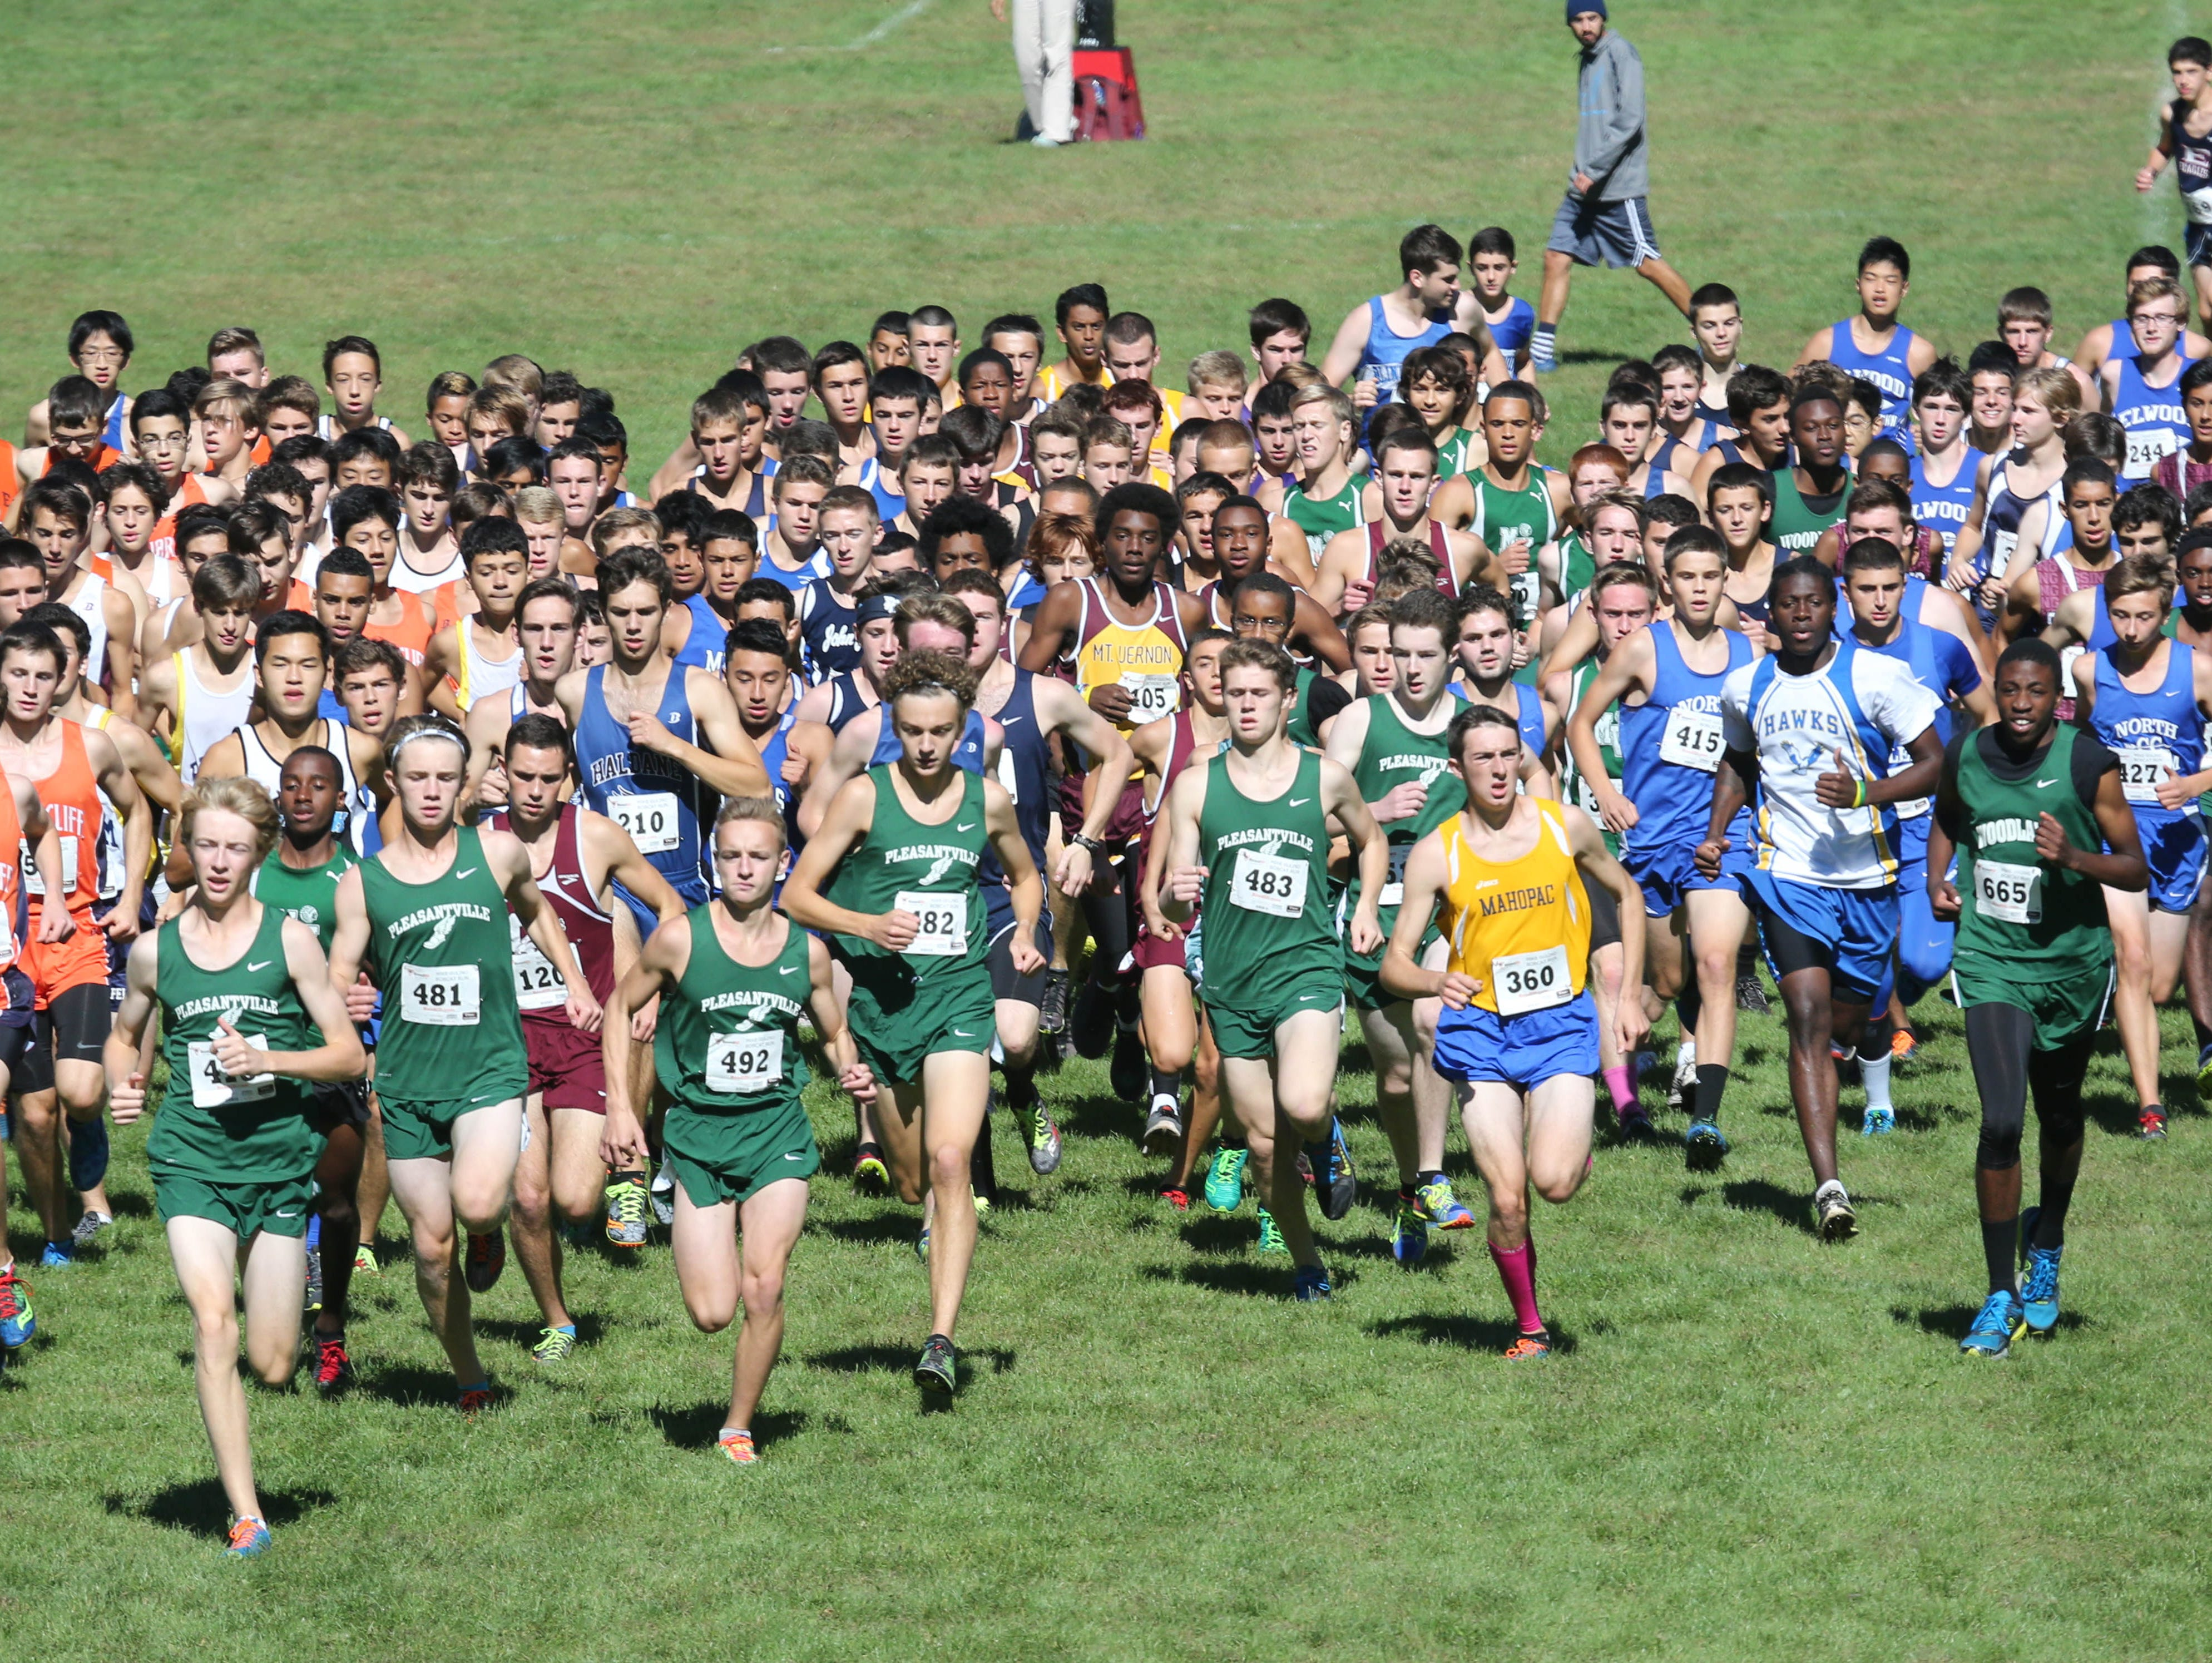 The start of the boys varsity race during the Bobcat Run cross country meet at Byram Hills High School in Armonk, Oct. 10, 2015.